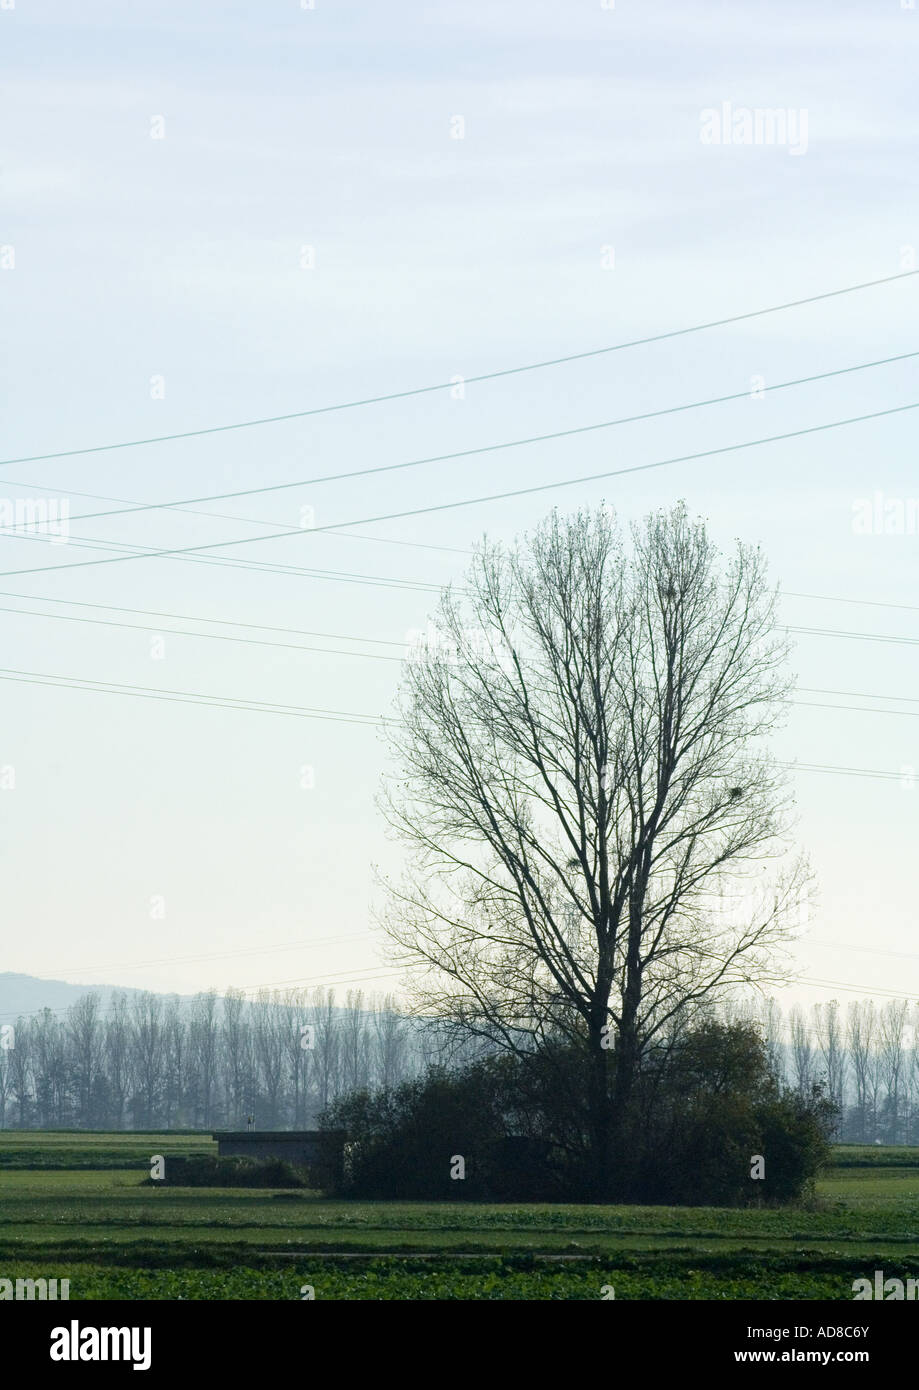 Trees and bushes in rural landscape under electric lines - Stock Image